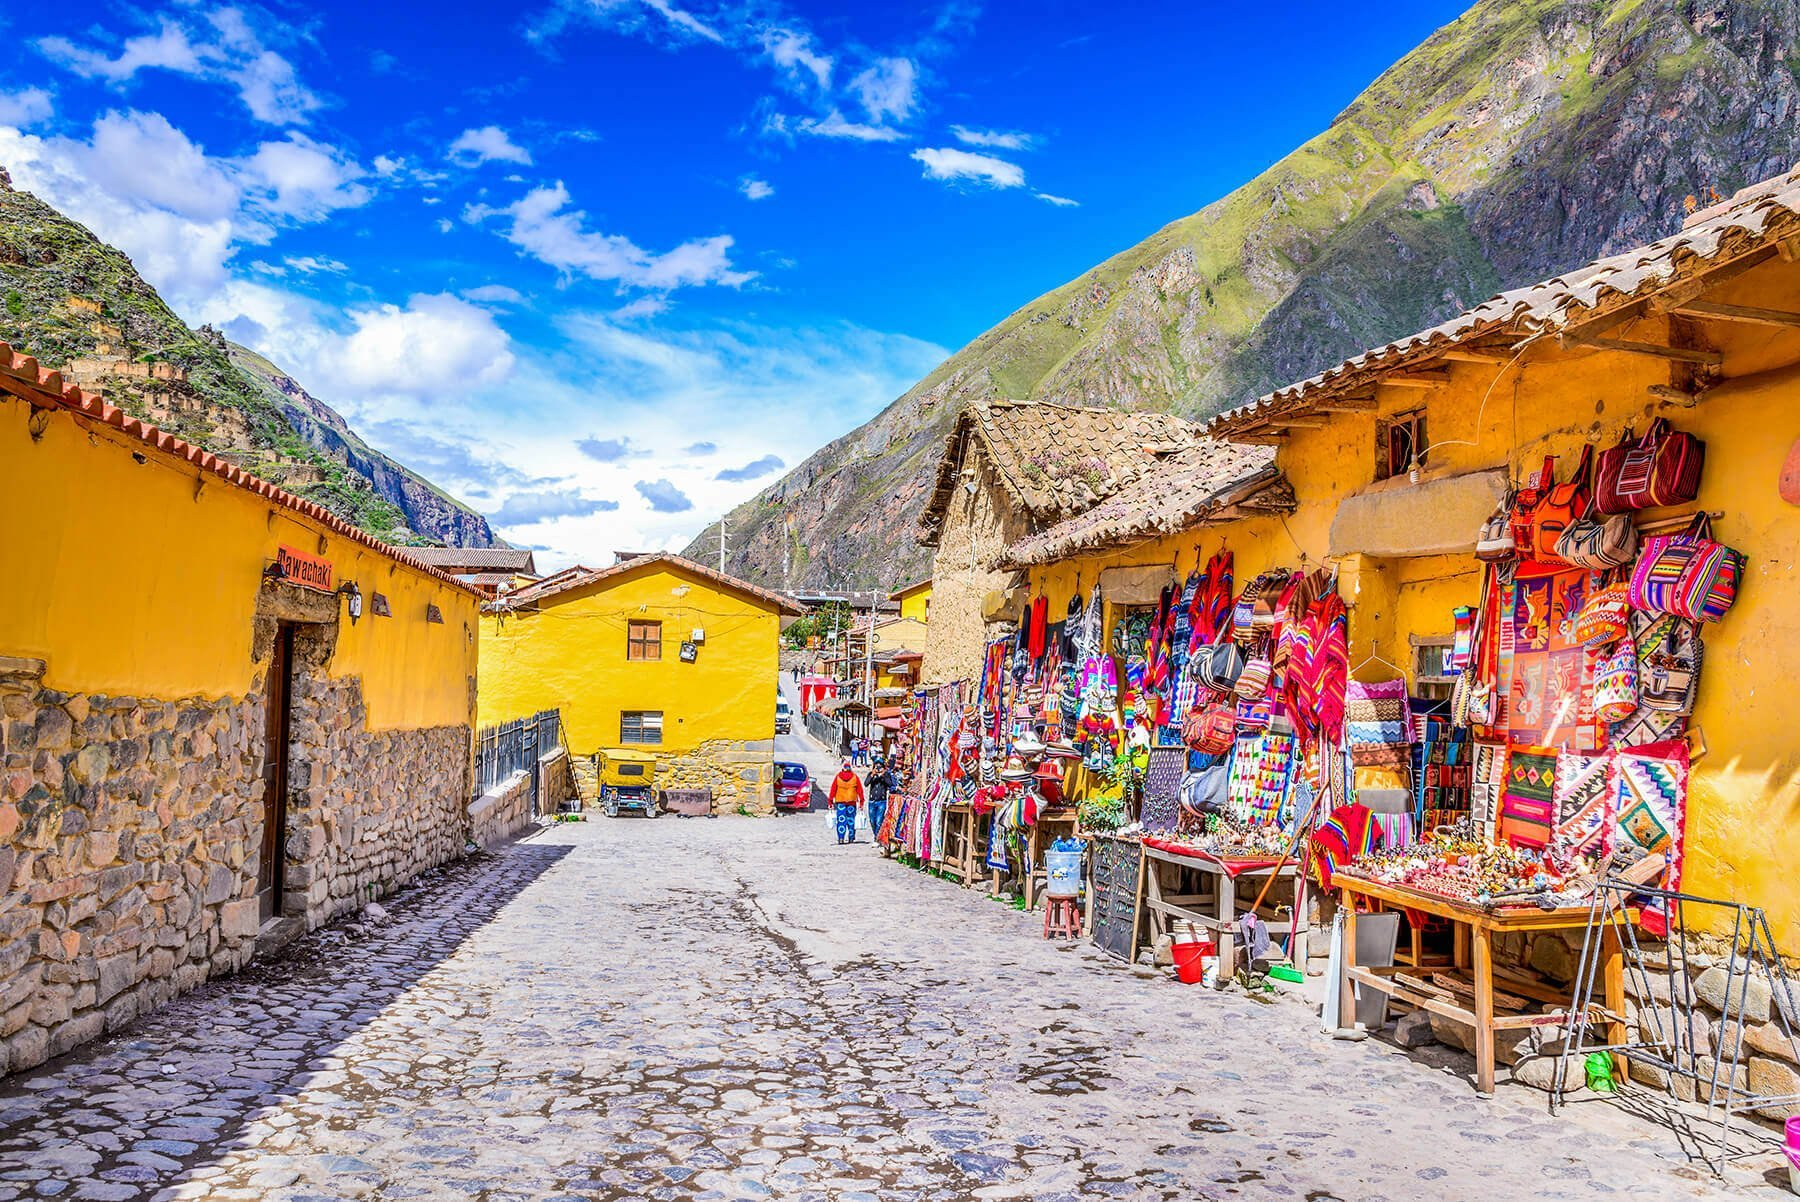 Ollantaytambo in Peru is known for the Inca ruins of Sacred Valley